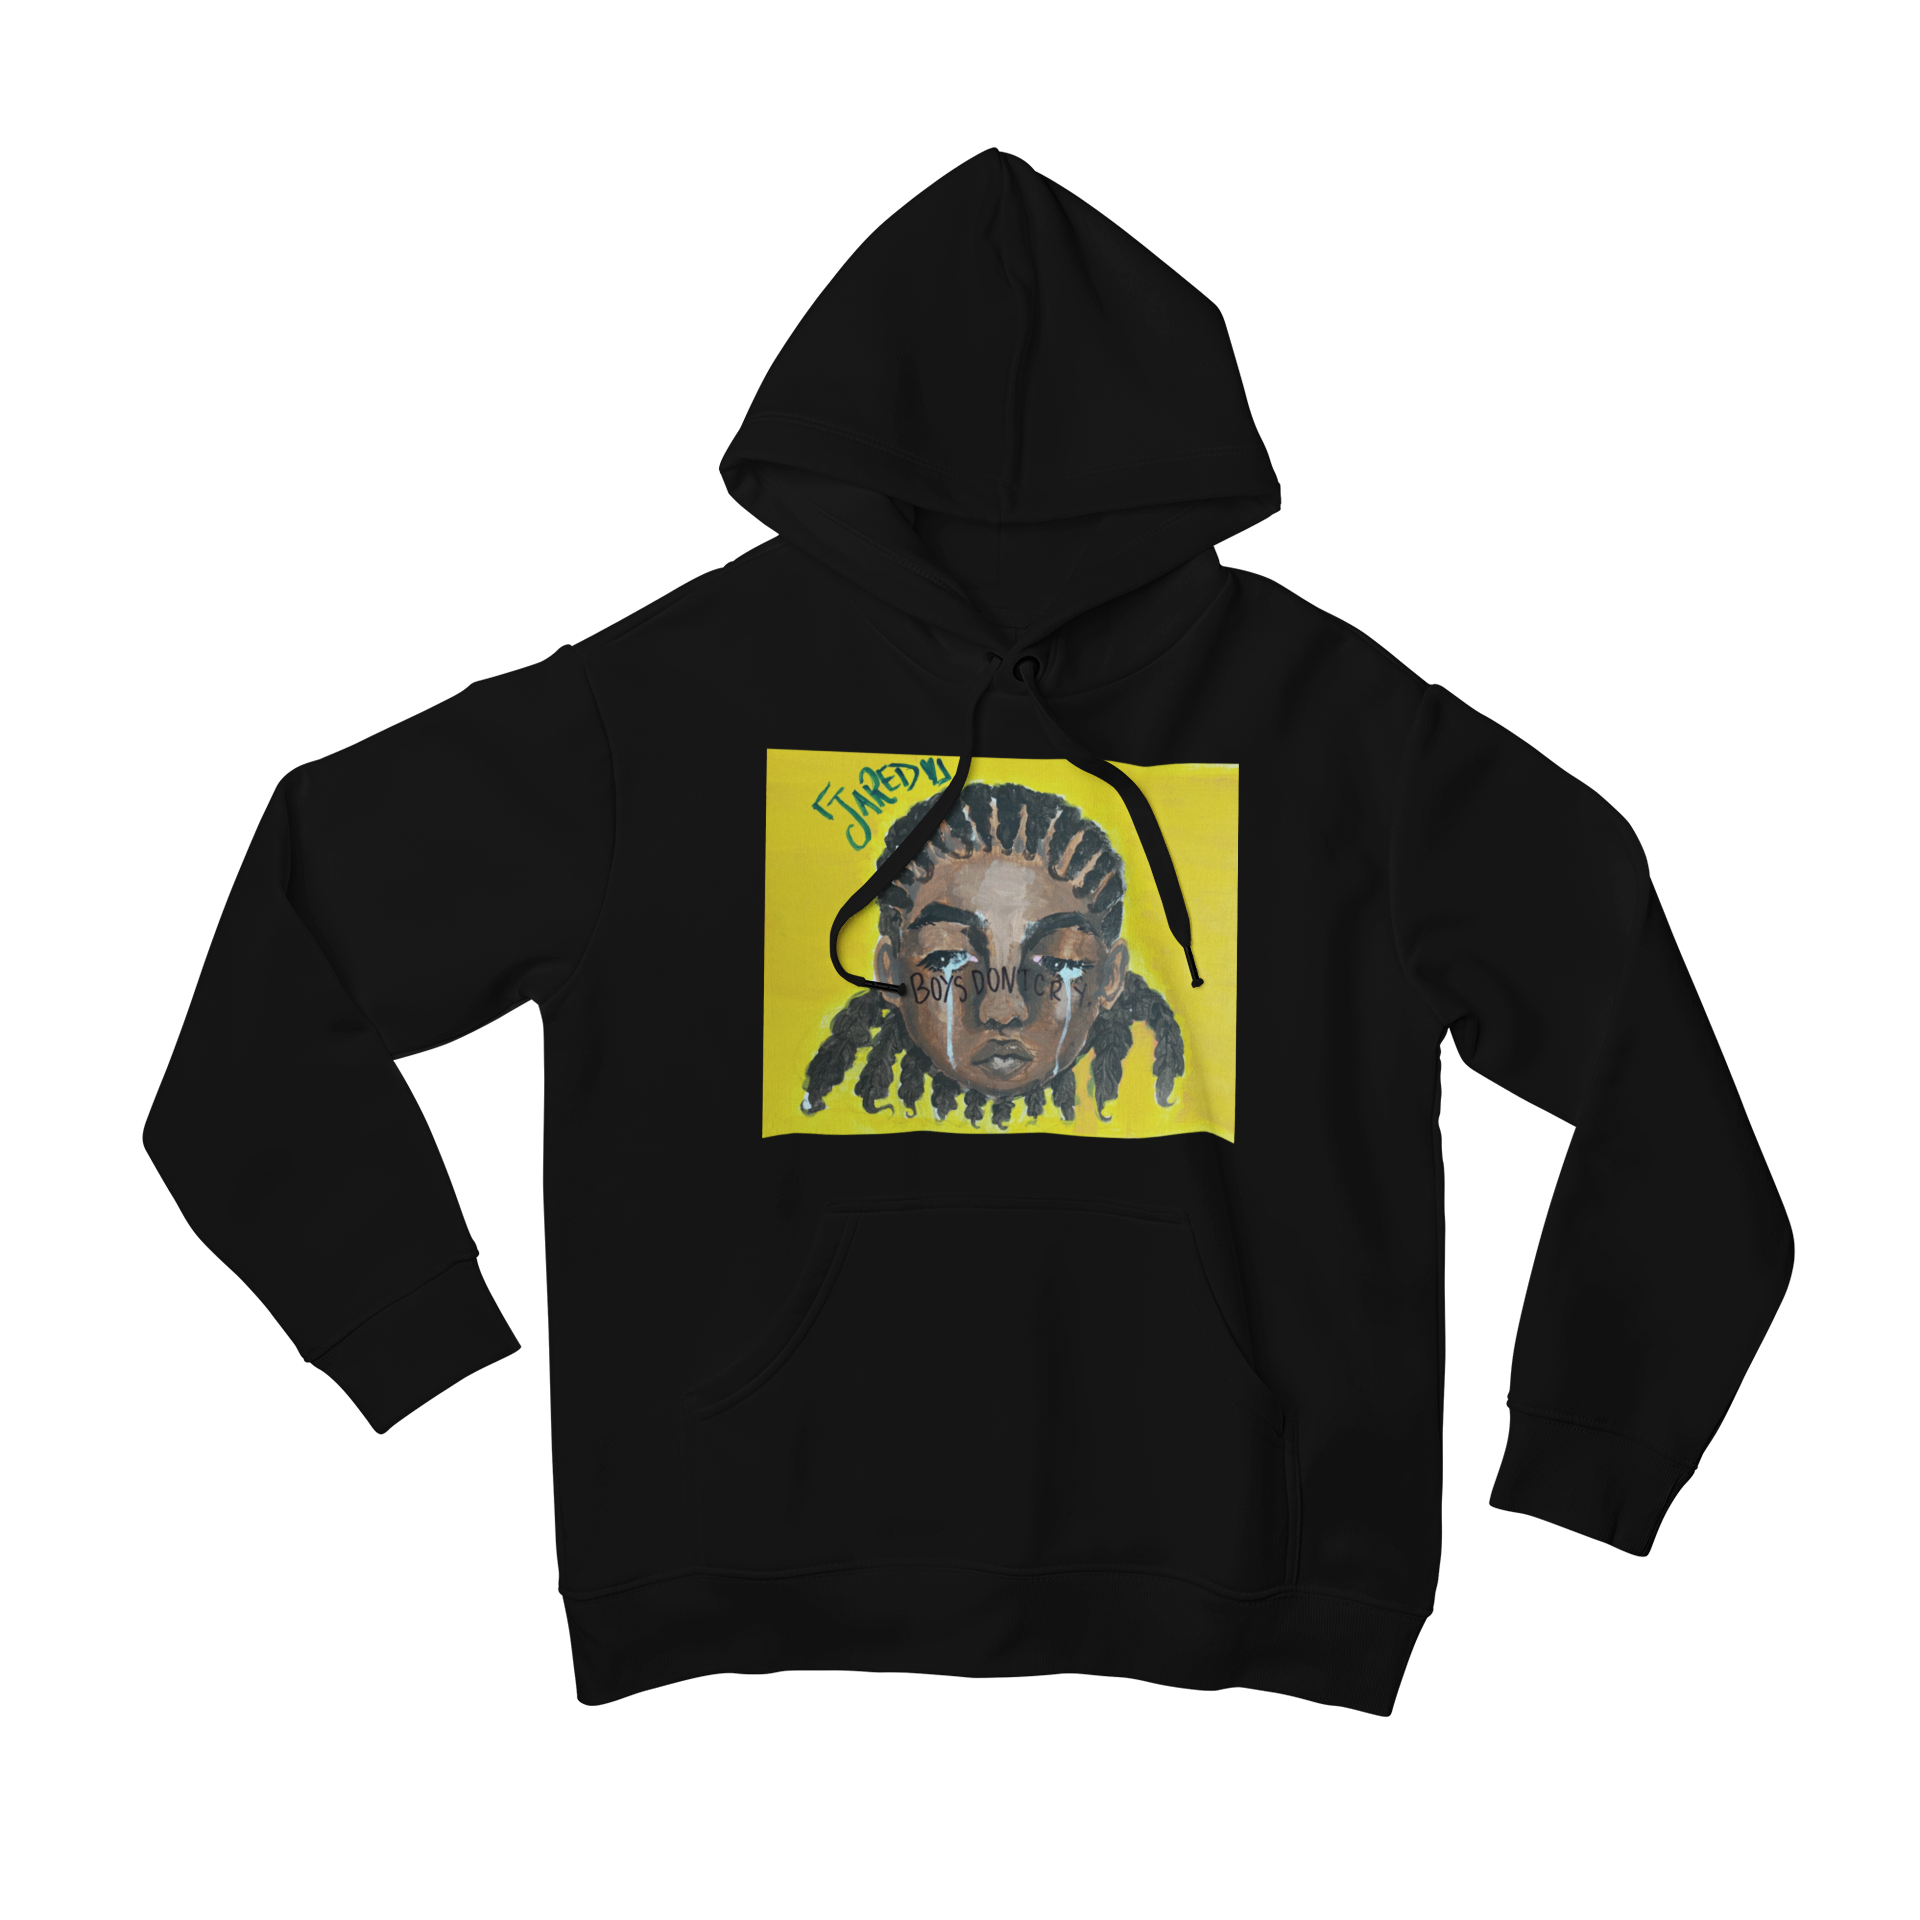 [BOYS DON'T CRY] Pullover Hoodie